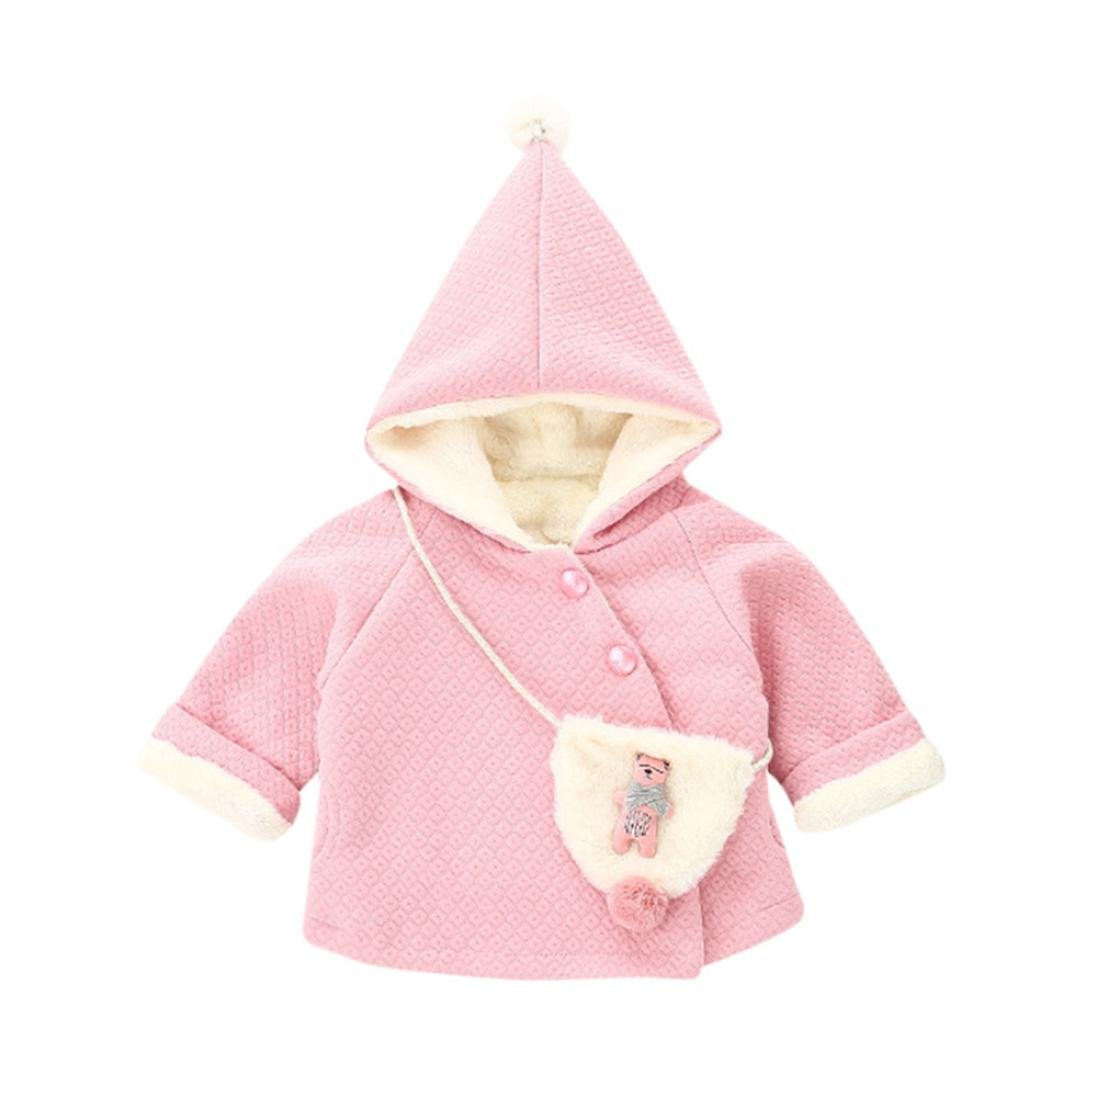 Goodtrade8 GOTD Infant Toddler Baby Girl Boy Coat Long Sleeve Clothes Ball Warm Winter Tops Outfits